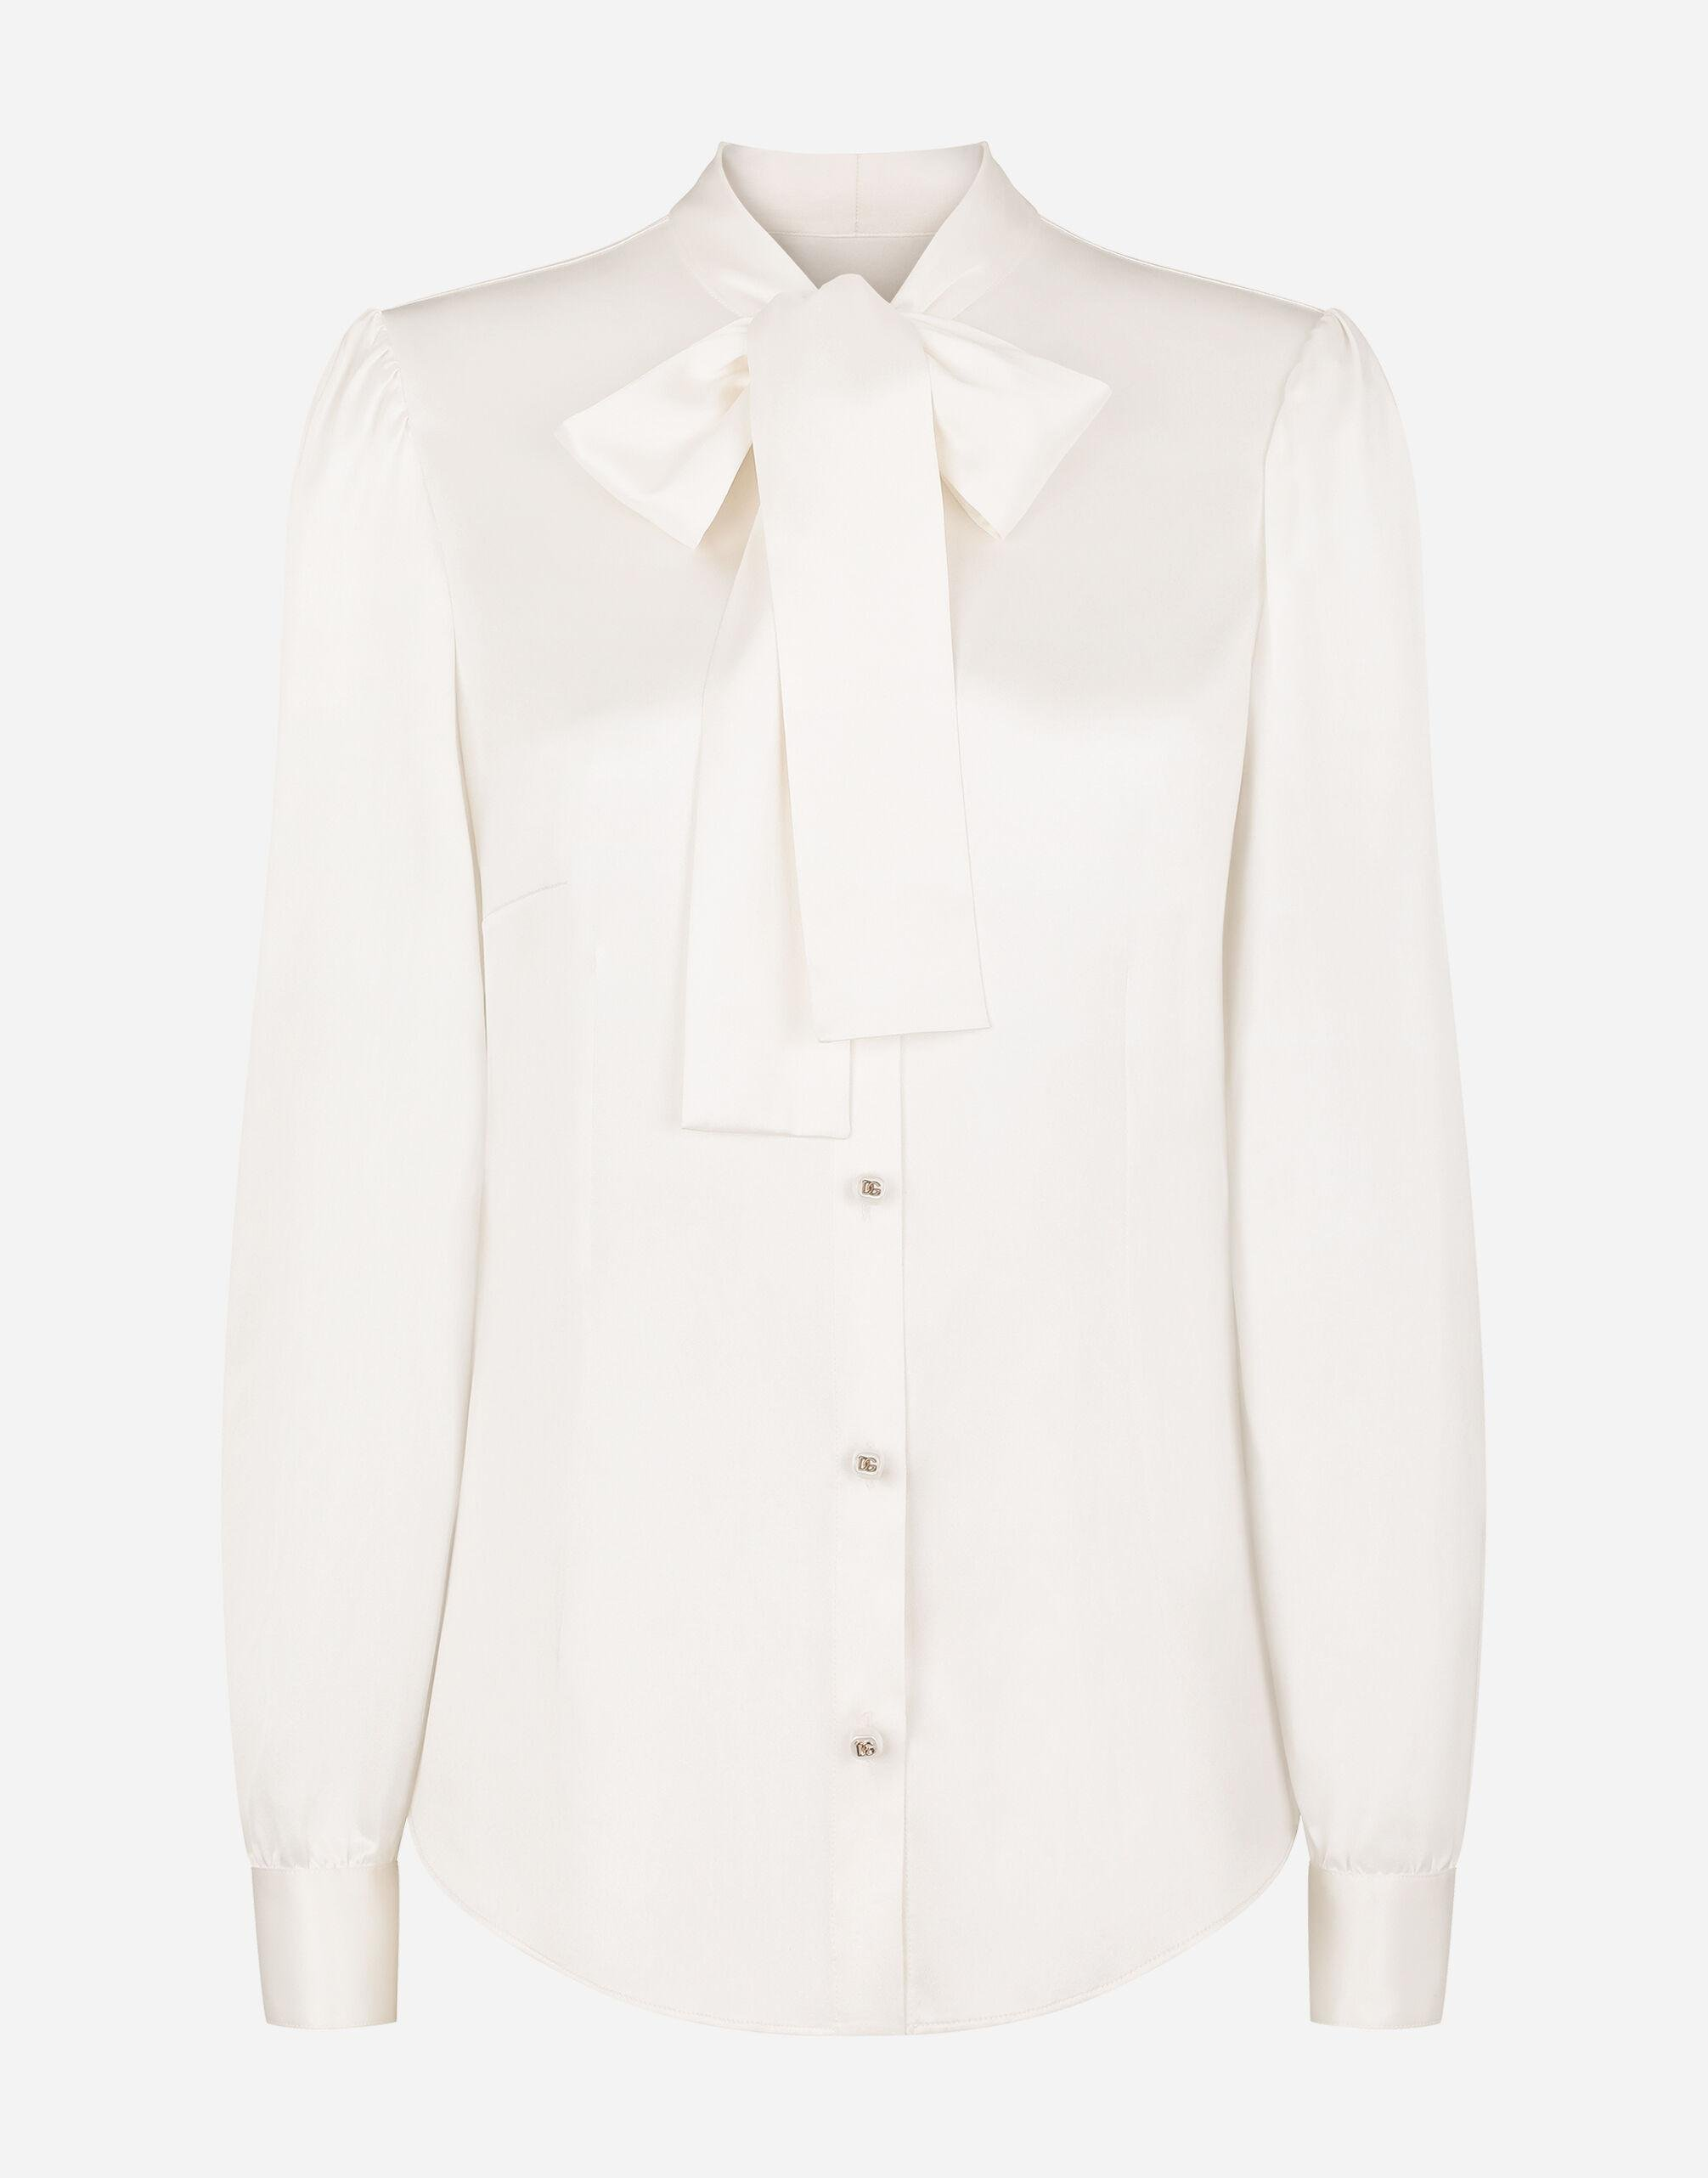 Satin shirt with pearl buttons with DG logo 5